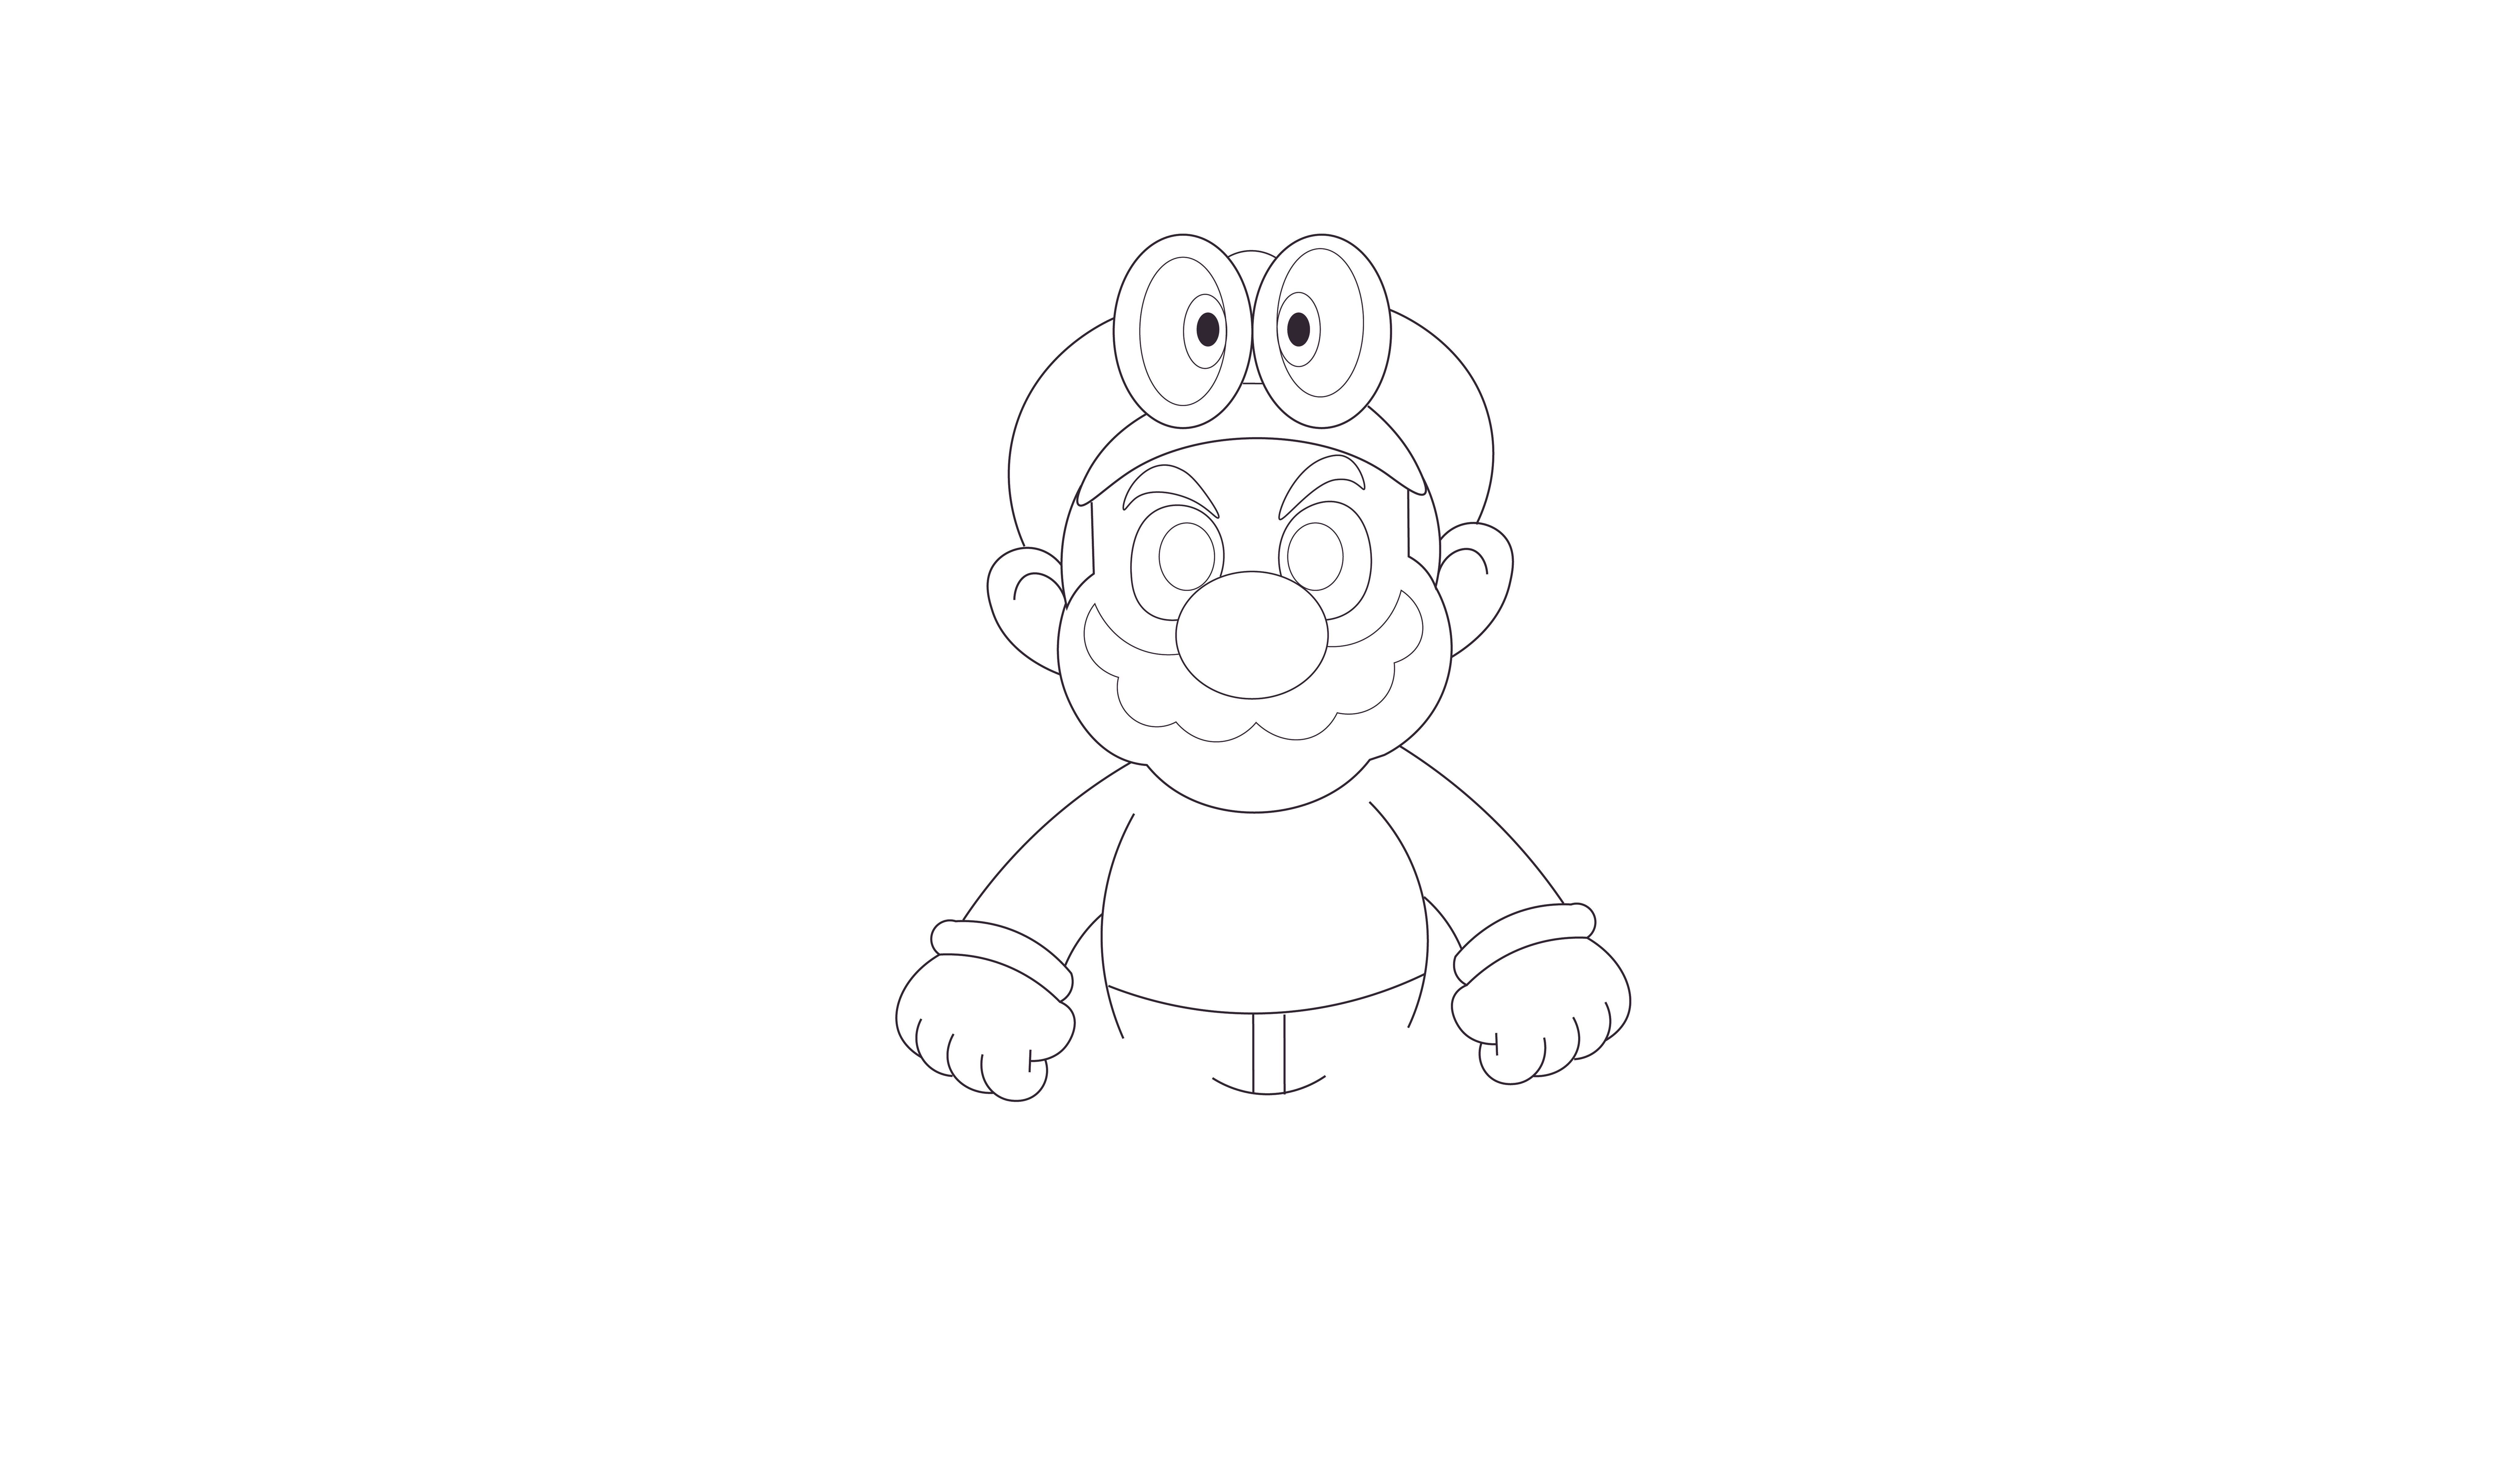 Pin de Shawn Howto en How To Draw Super Mario Odyssey | Pinterest